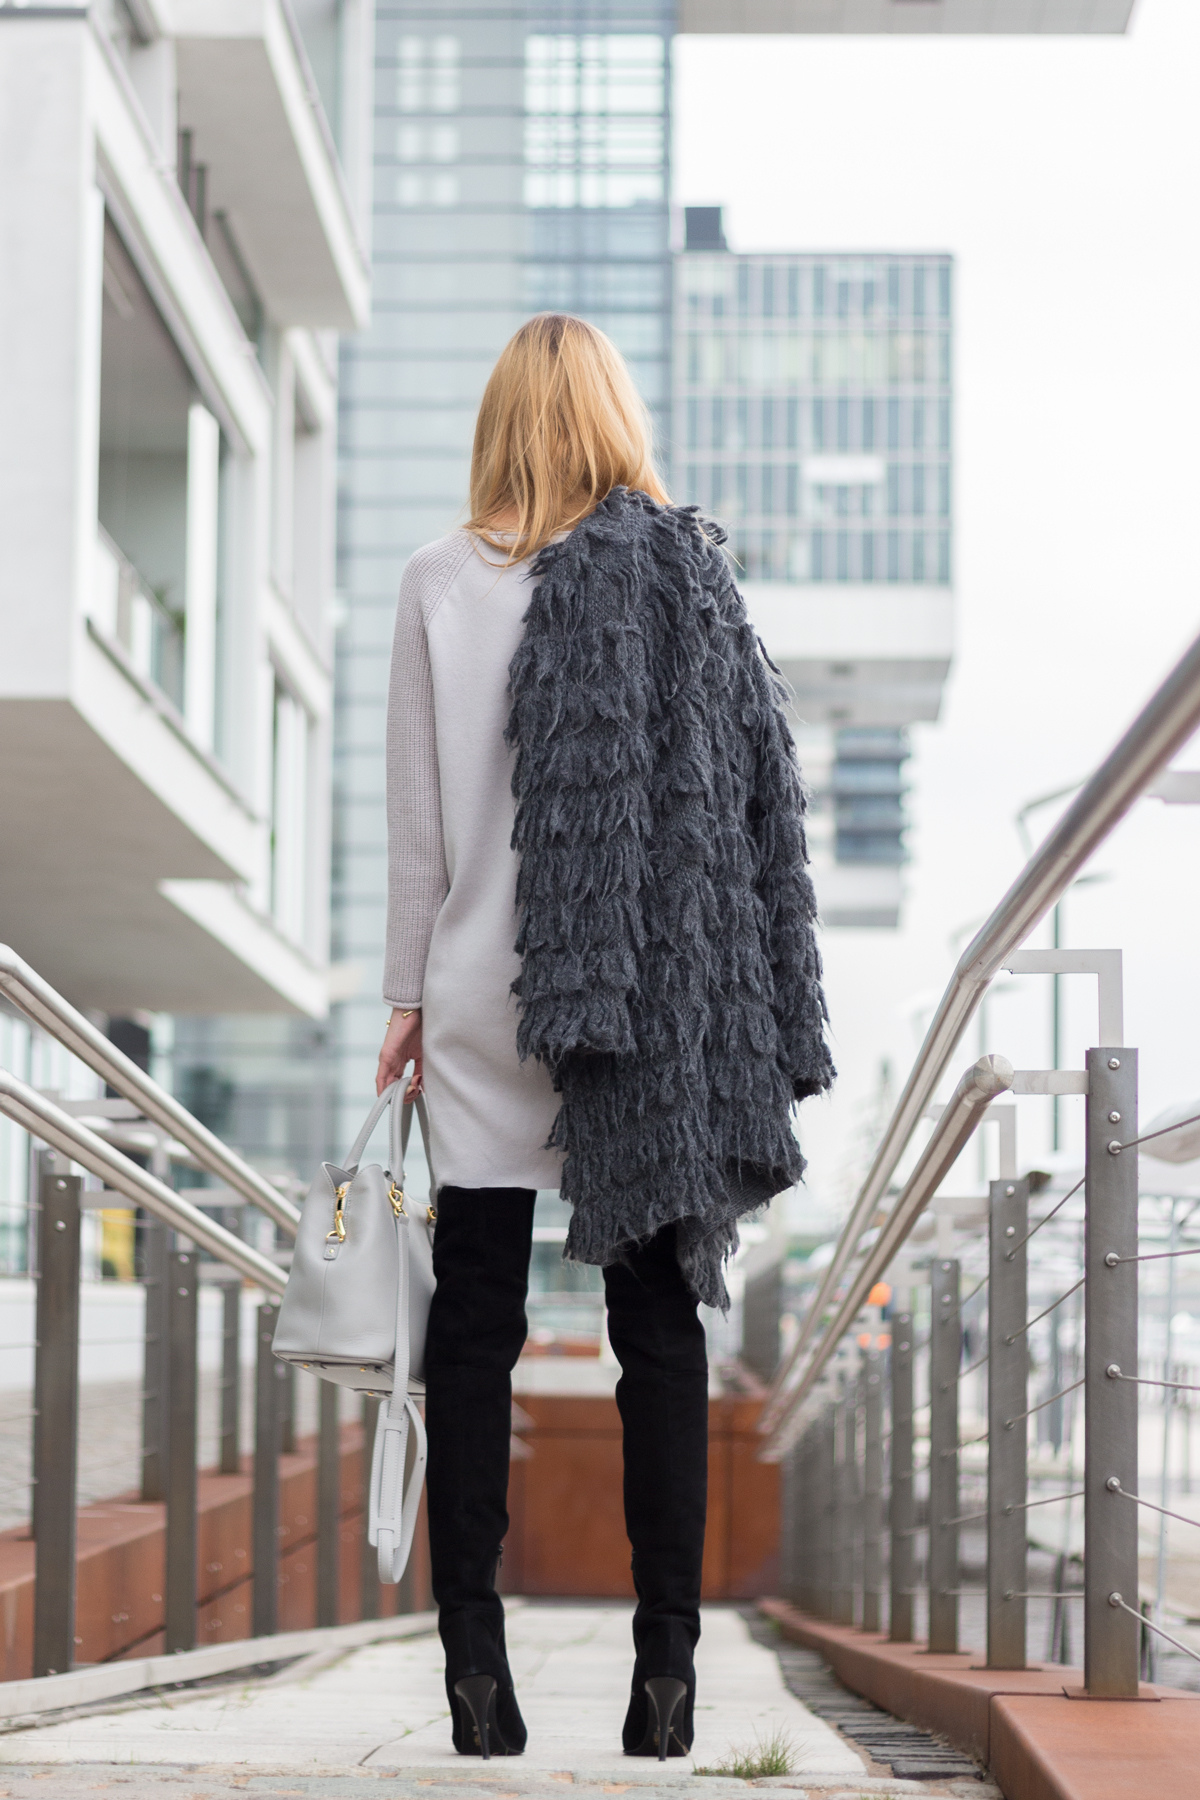 Furry Coat & Overknees II How I met my outfit